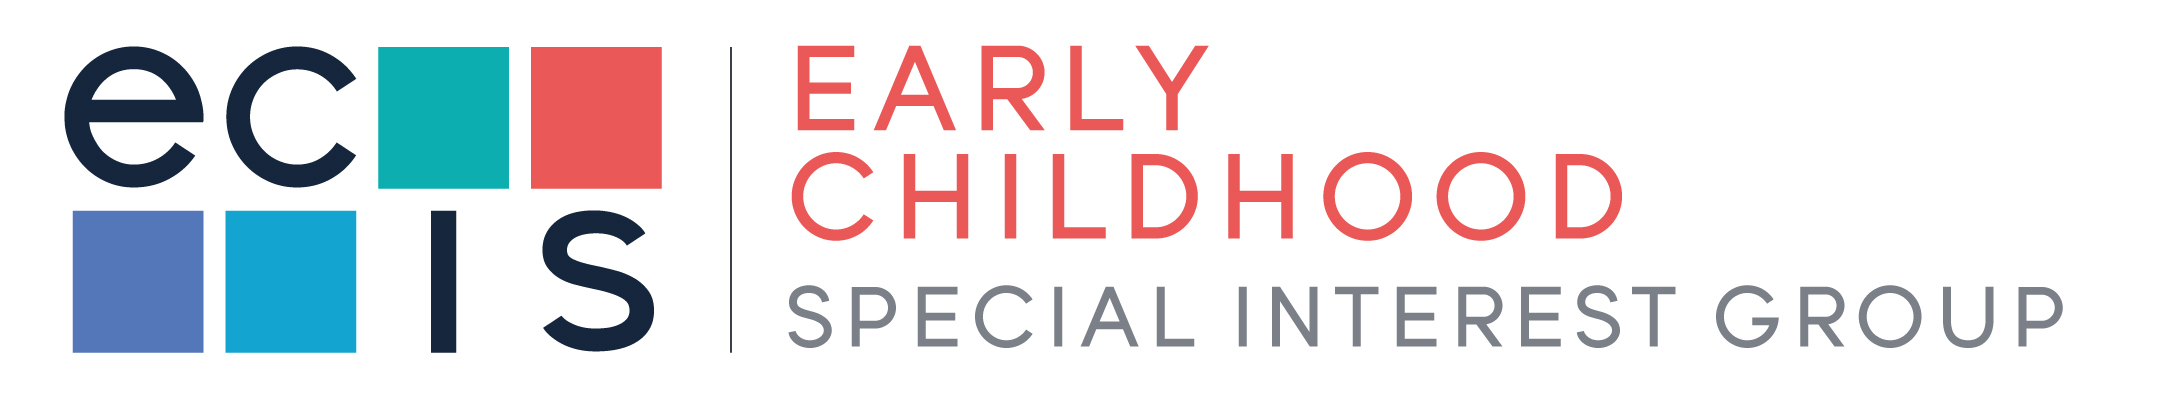 ECIS Early Childhood Special Interest Group